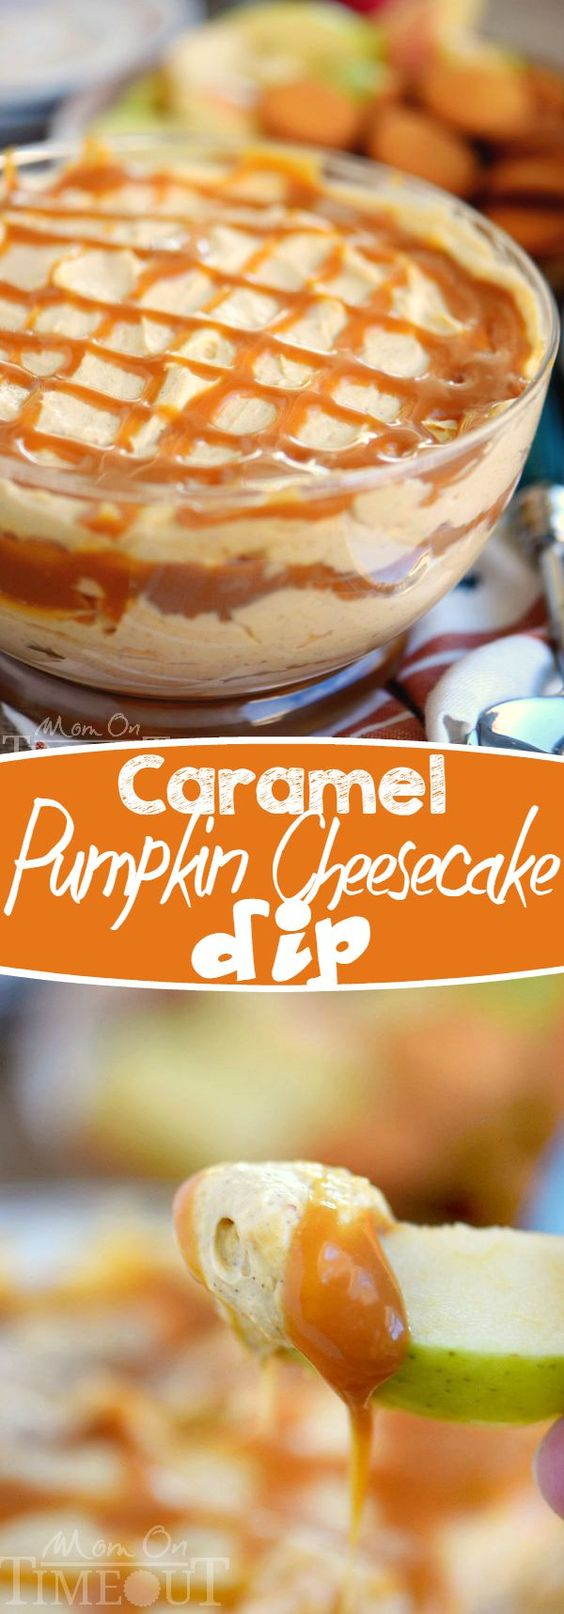 This easy to make, over the top all dessert table treat will have everyone coming back for seconds! Caramel Pumpkin Cheesecake Dip Recipe | Mom On Timeout #falldesserts #winterdesserts #christmasdesserts #thanksgivingdesserts #partydesserts #holidaydesserts #cinnamondesserts #carameldesserts #pumpkindesserts #appledesserts